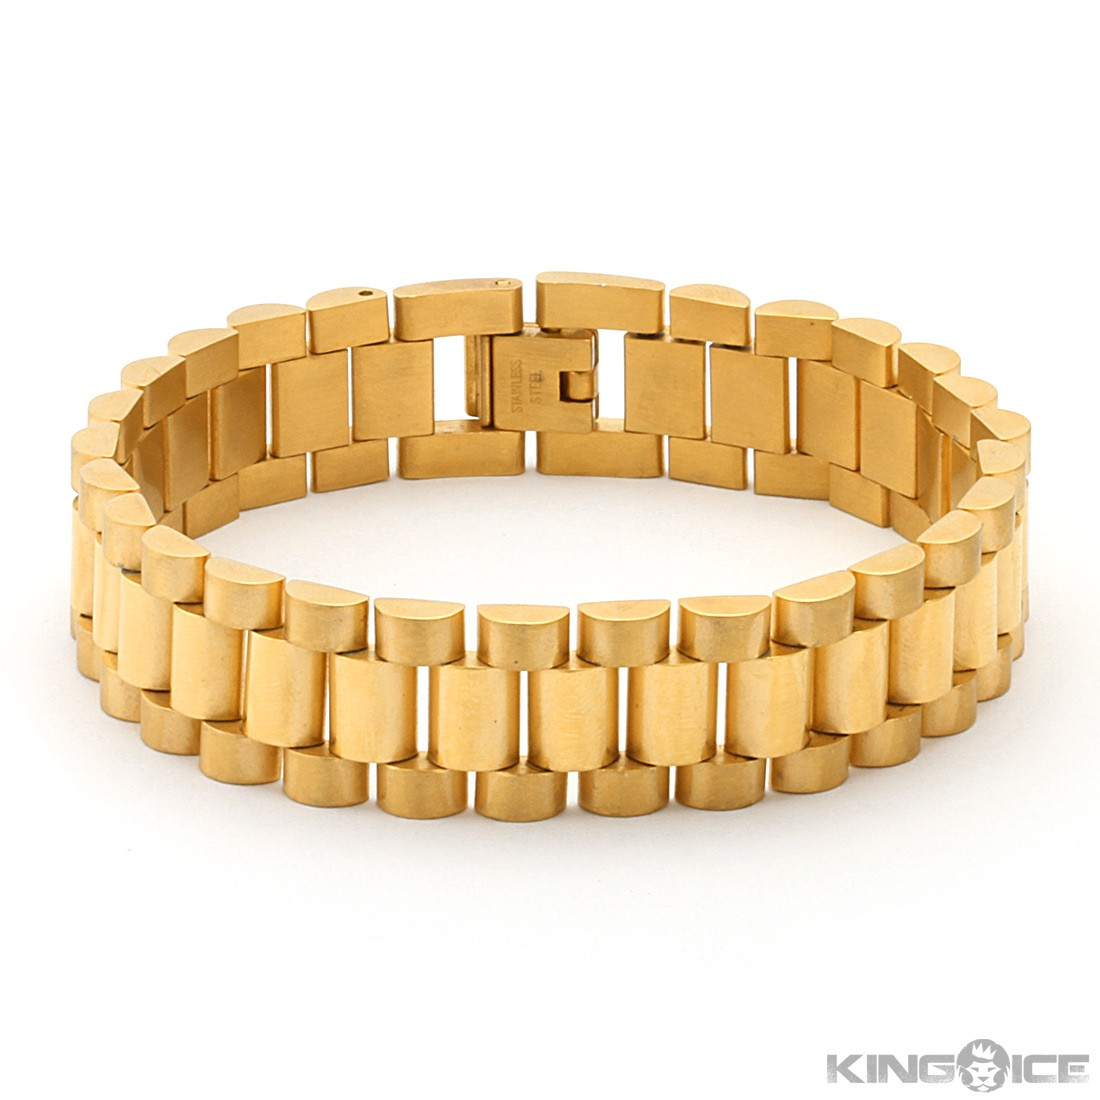 Rolex Watch Steel Bracelet | Rolex Jewelry | Urban Style Rolex ...